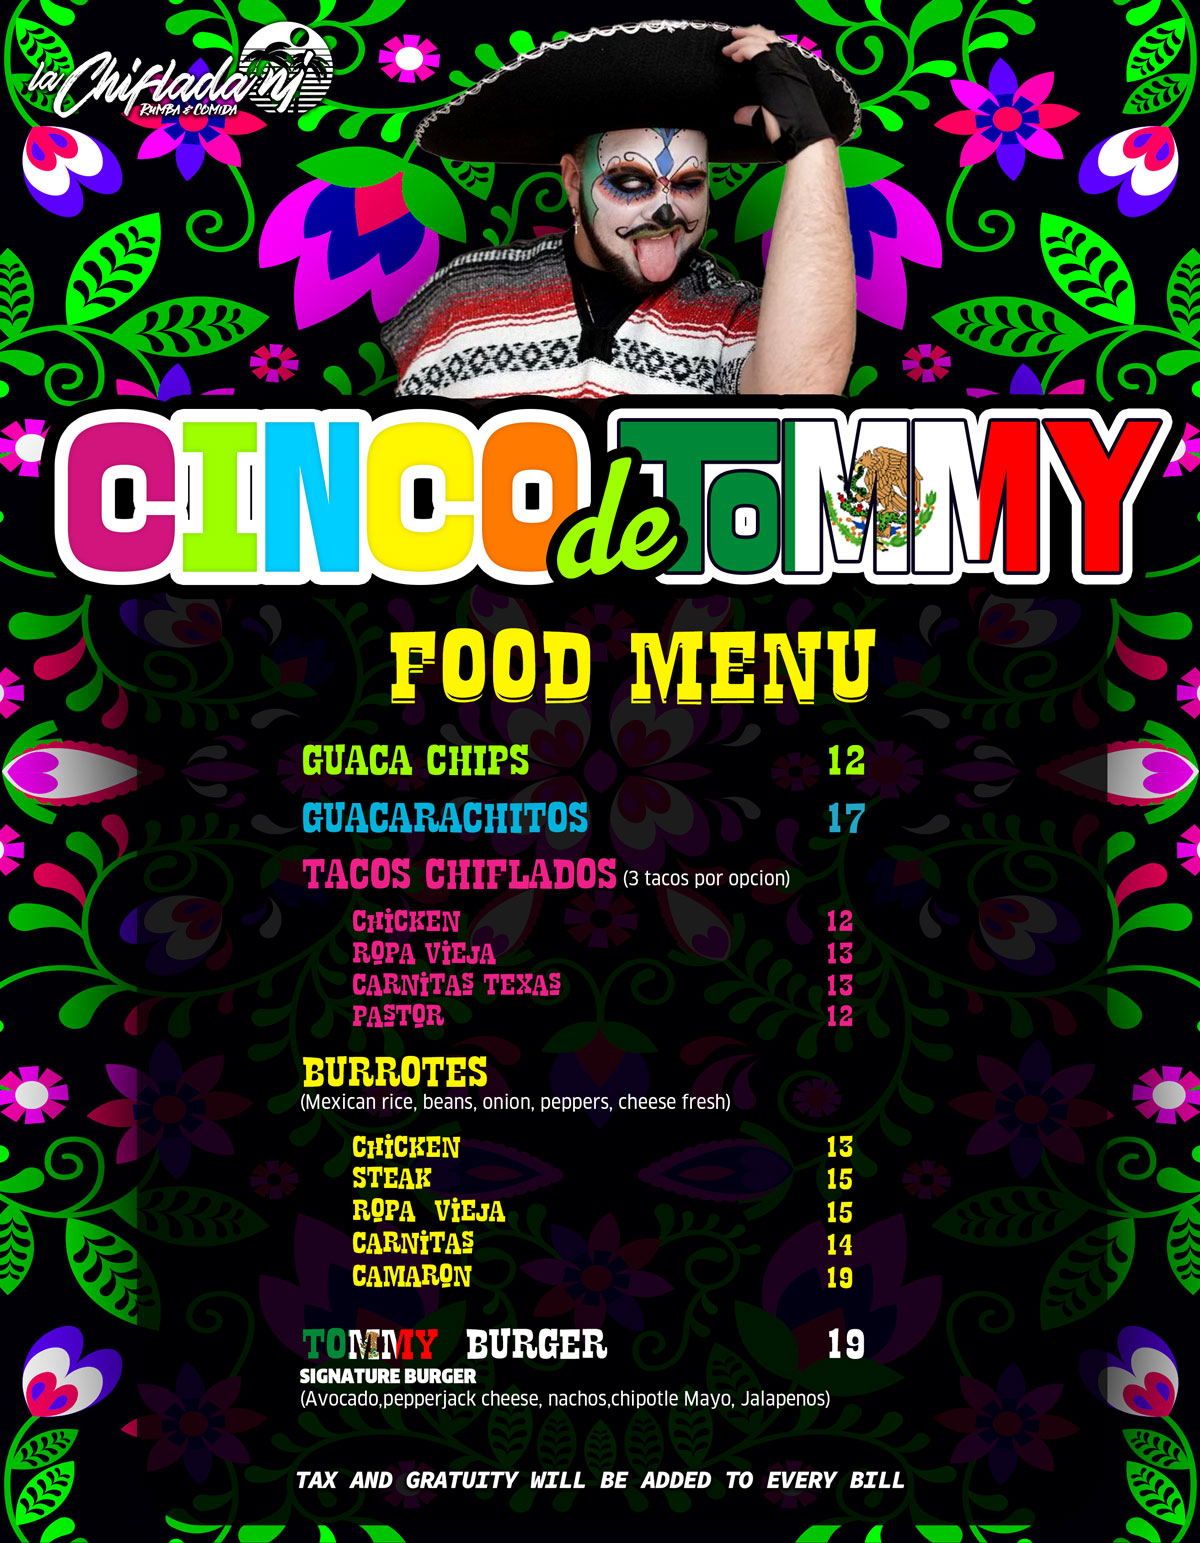 LA-CHIFLADA-FRIDAY-food-MENU-cinco-de-tommy-